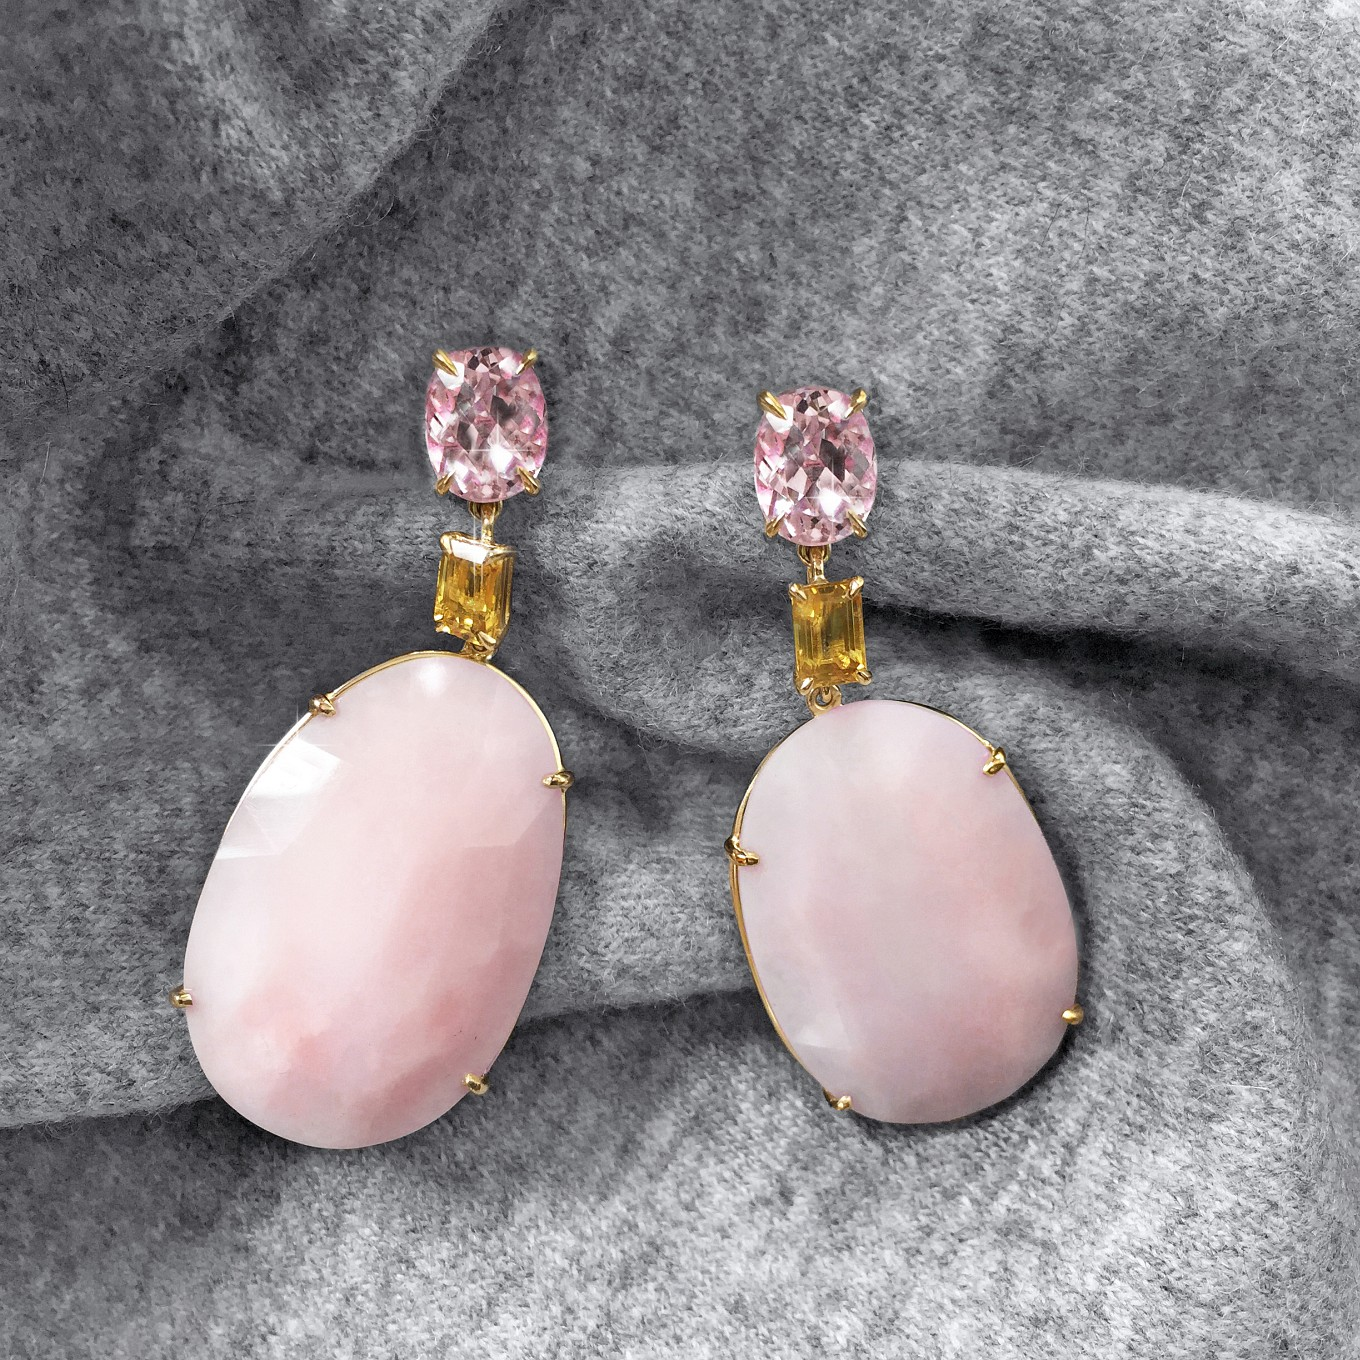 MORGANITE , YELLOW SAPPHIRE & ROSE CUT PINK OPAL EARRINGS IN YELLOW GOLD